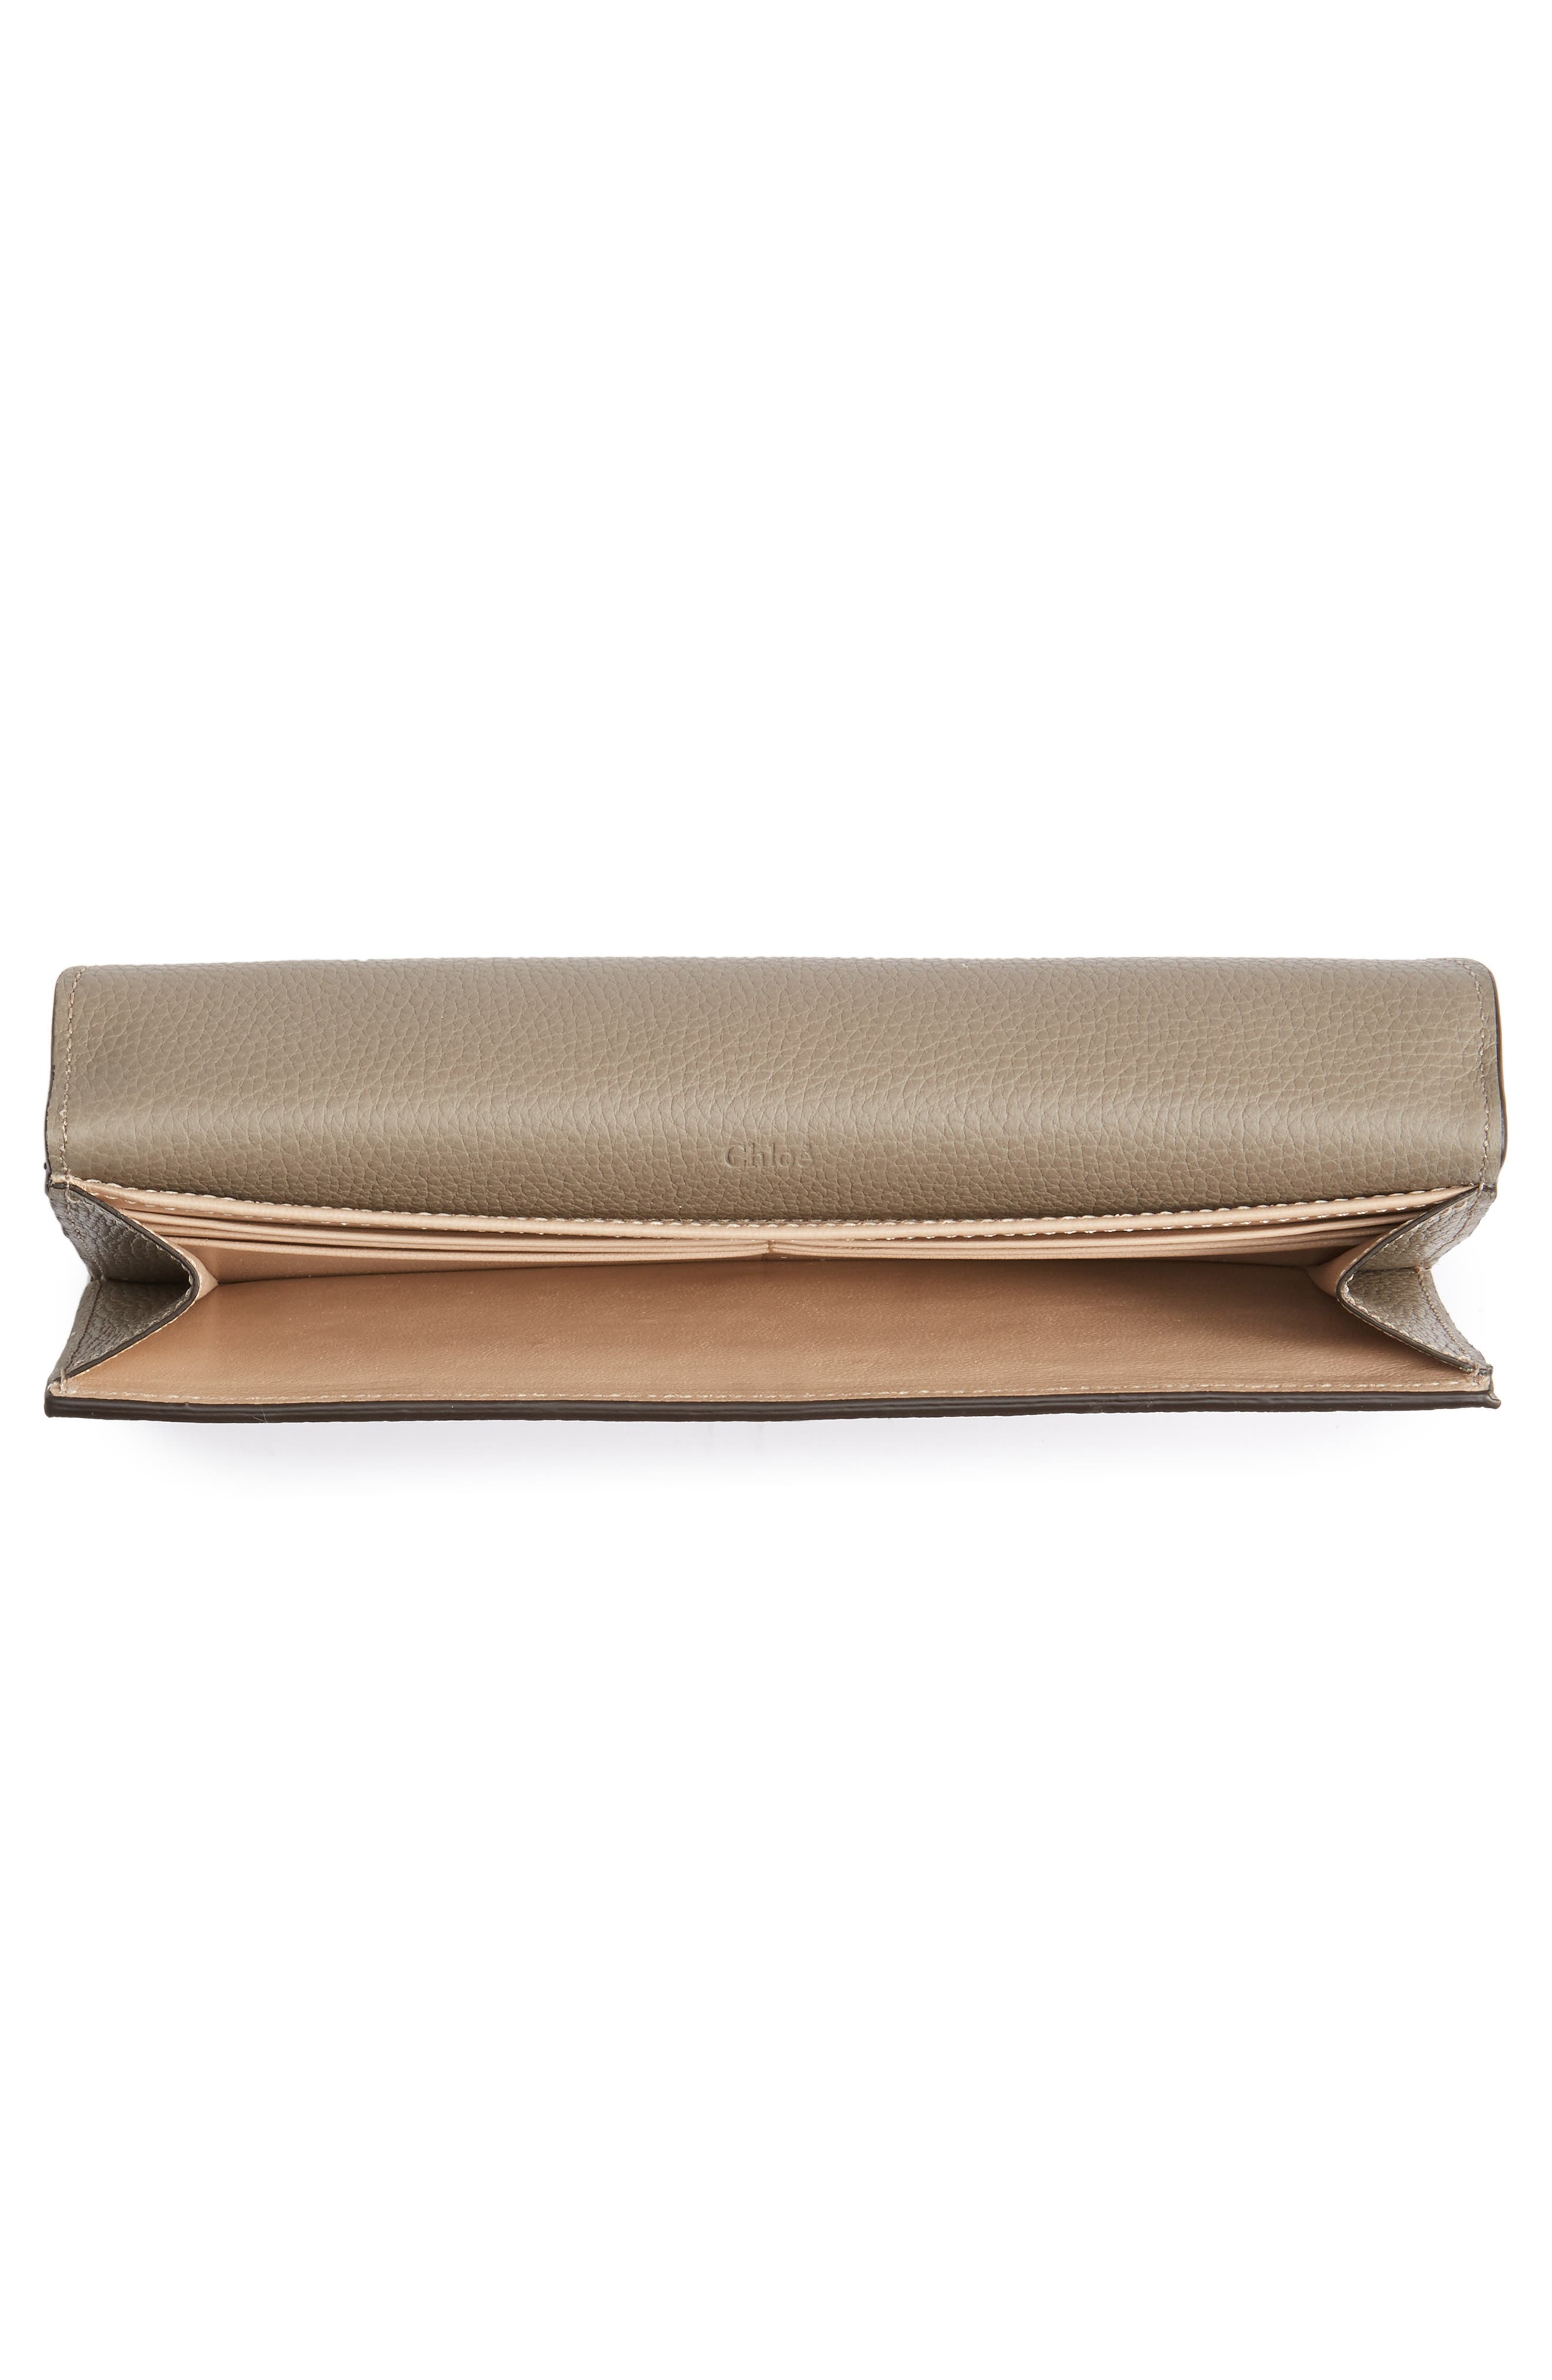 Alternate Image 2  - Chloé Georgia Continental Leather Wallet